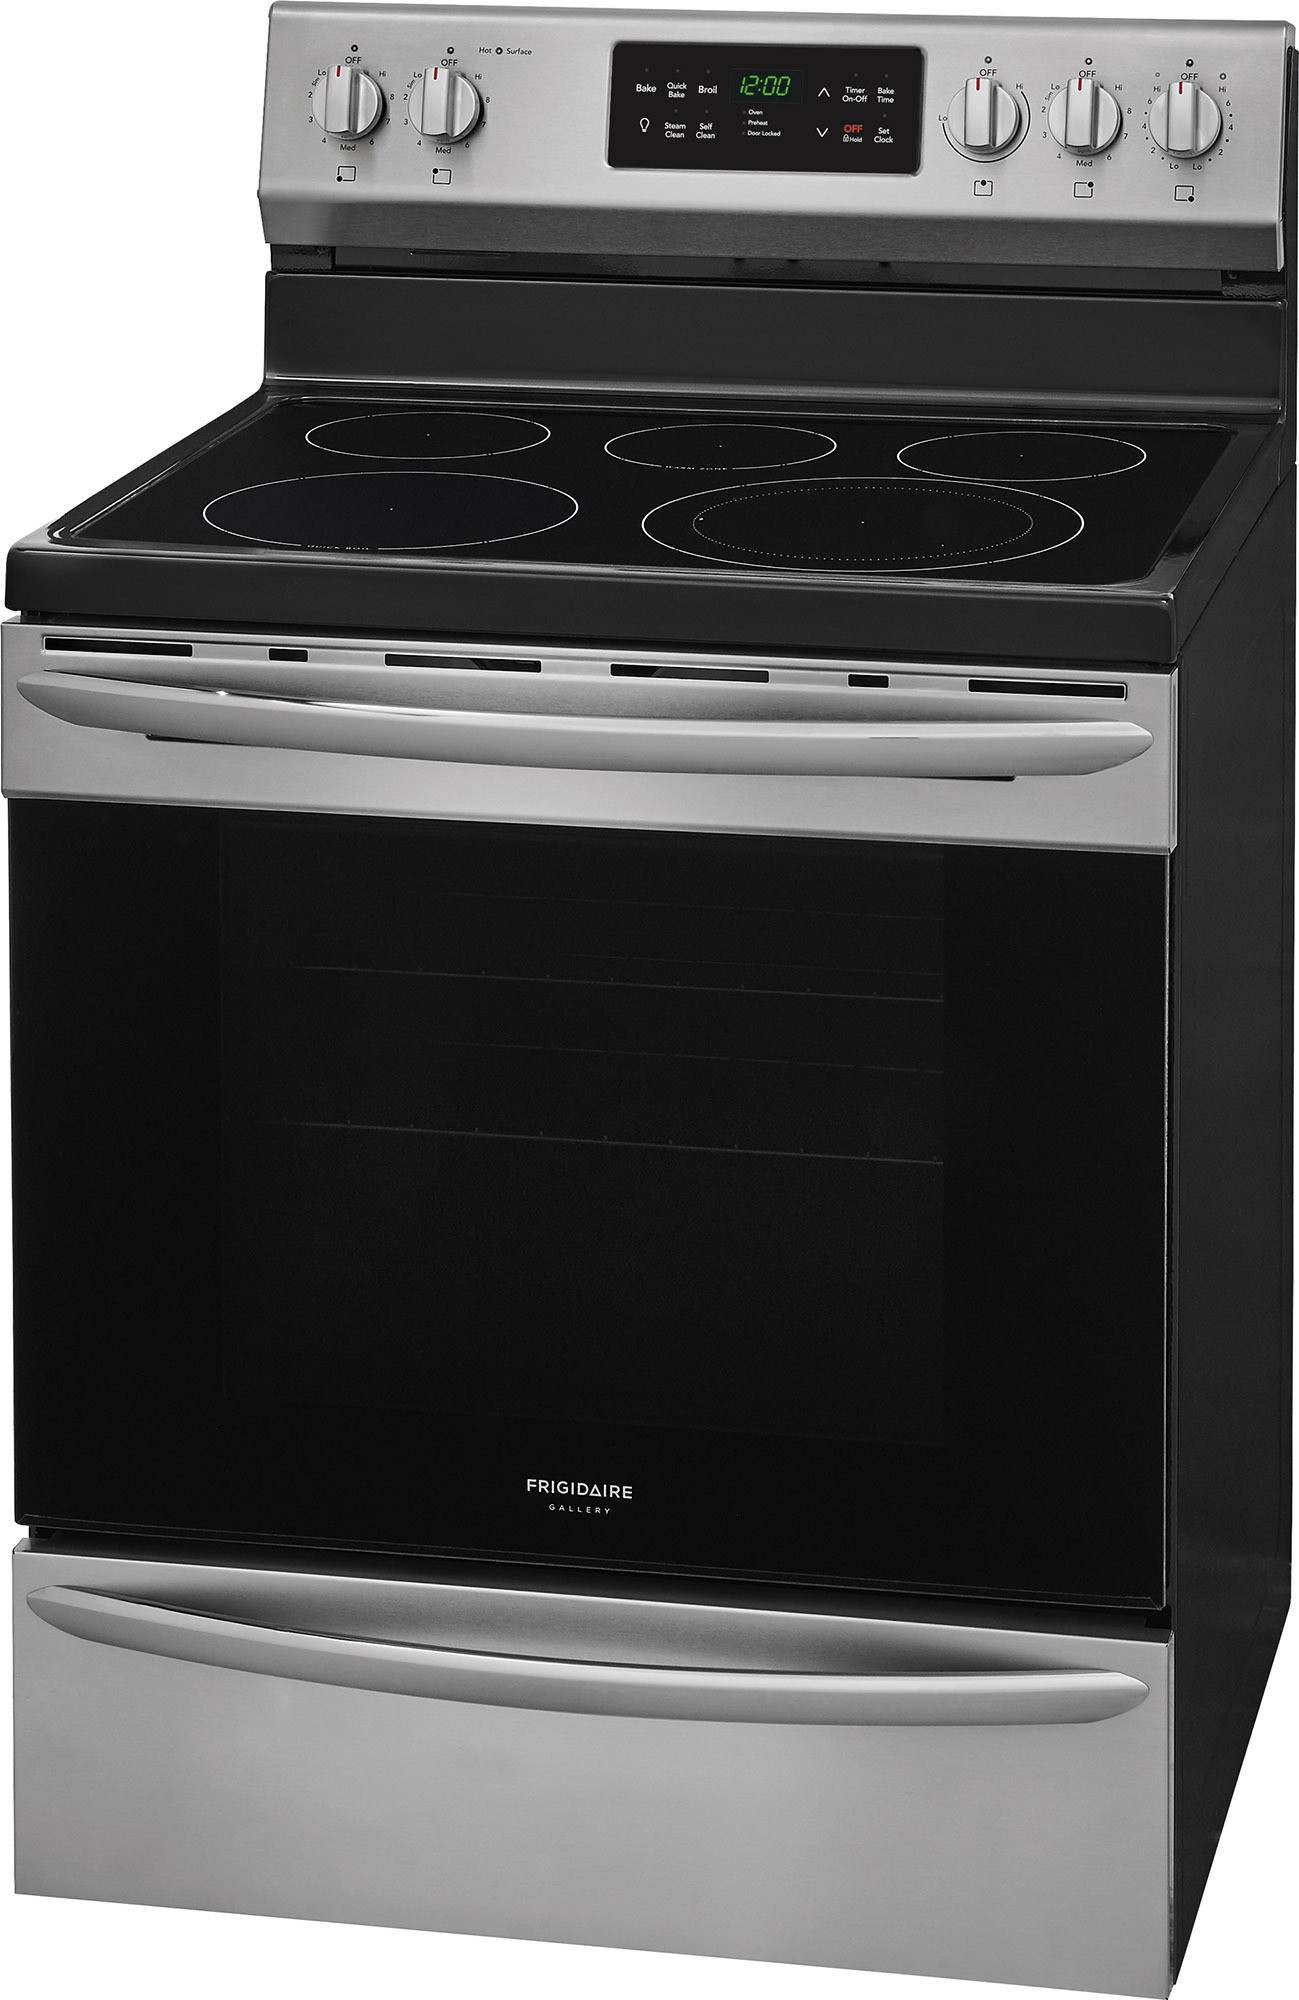 FGEF3036TF Frigidaire Gallery 30 Freestanding Electric Range Stainless Steel